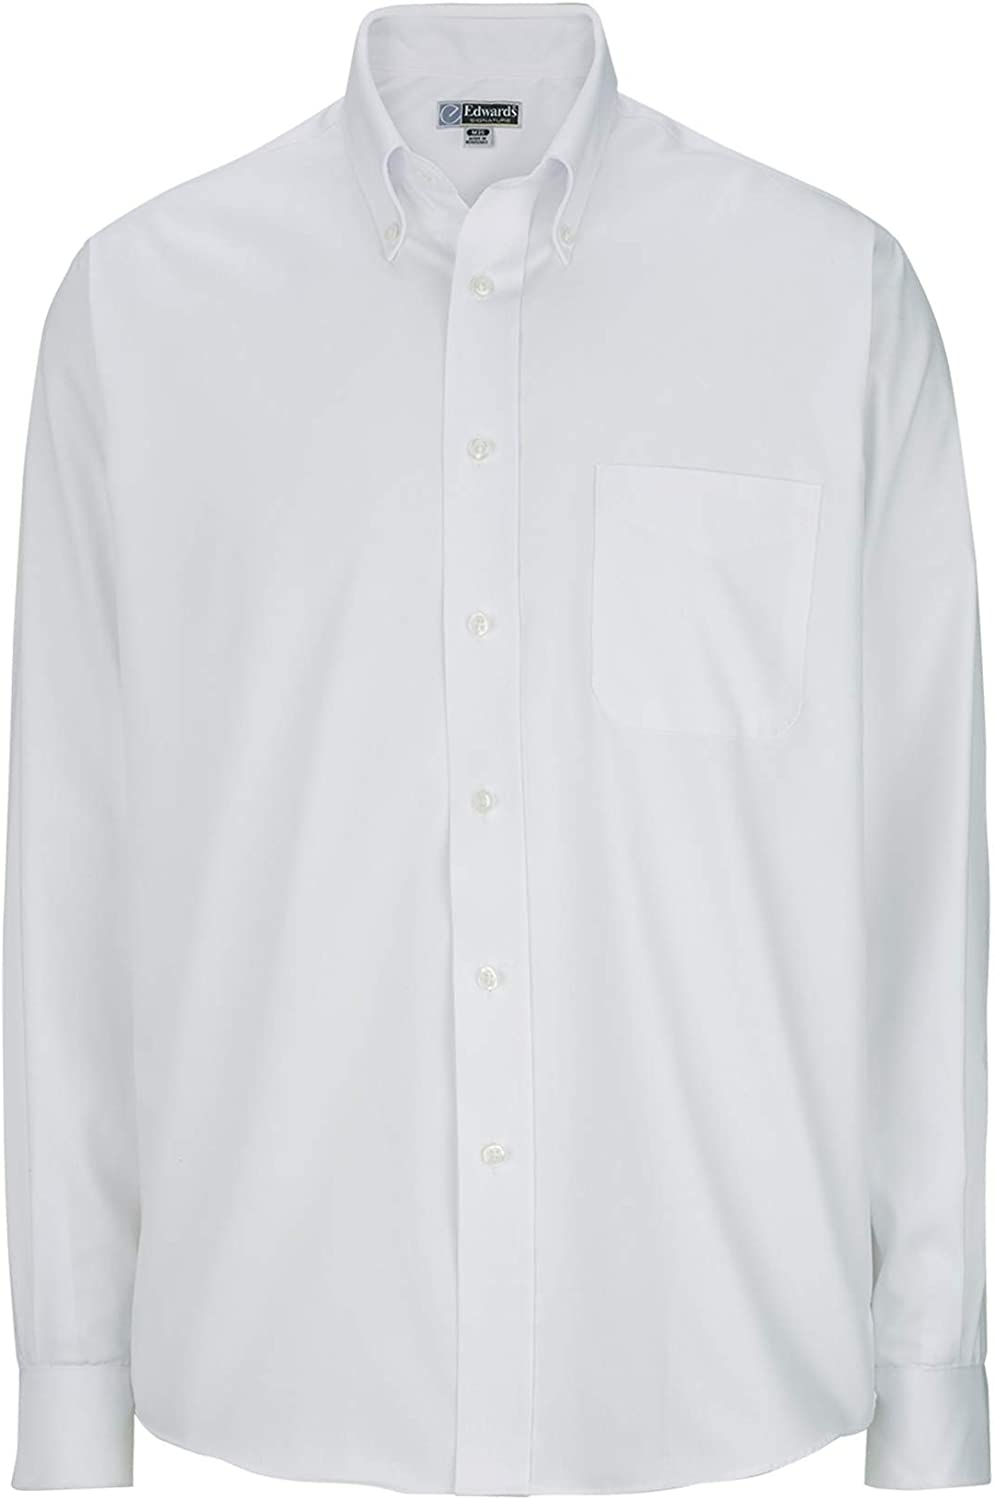 Big Tall Pin Point Oxford Shirts up to 6XT in 4 Colors